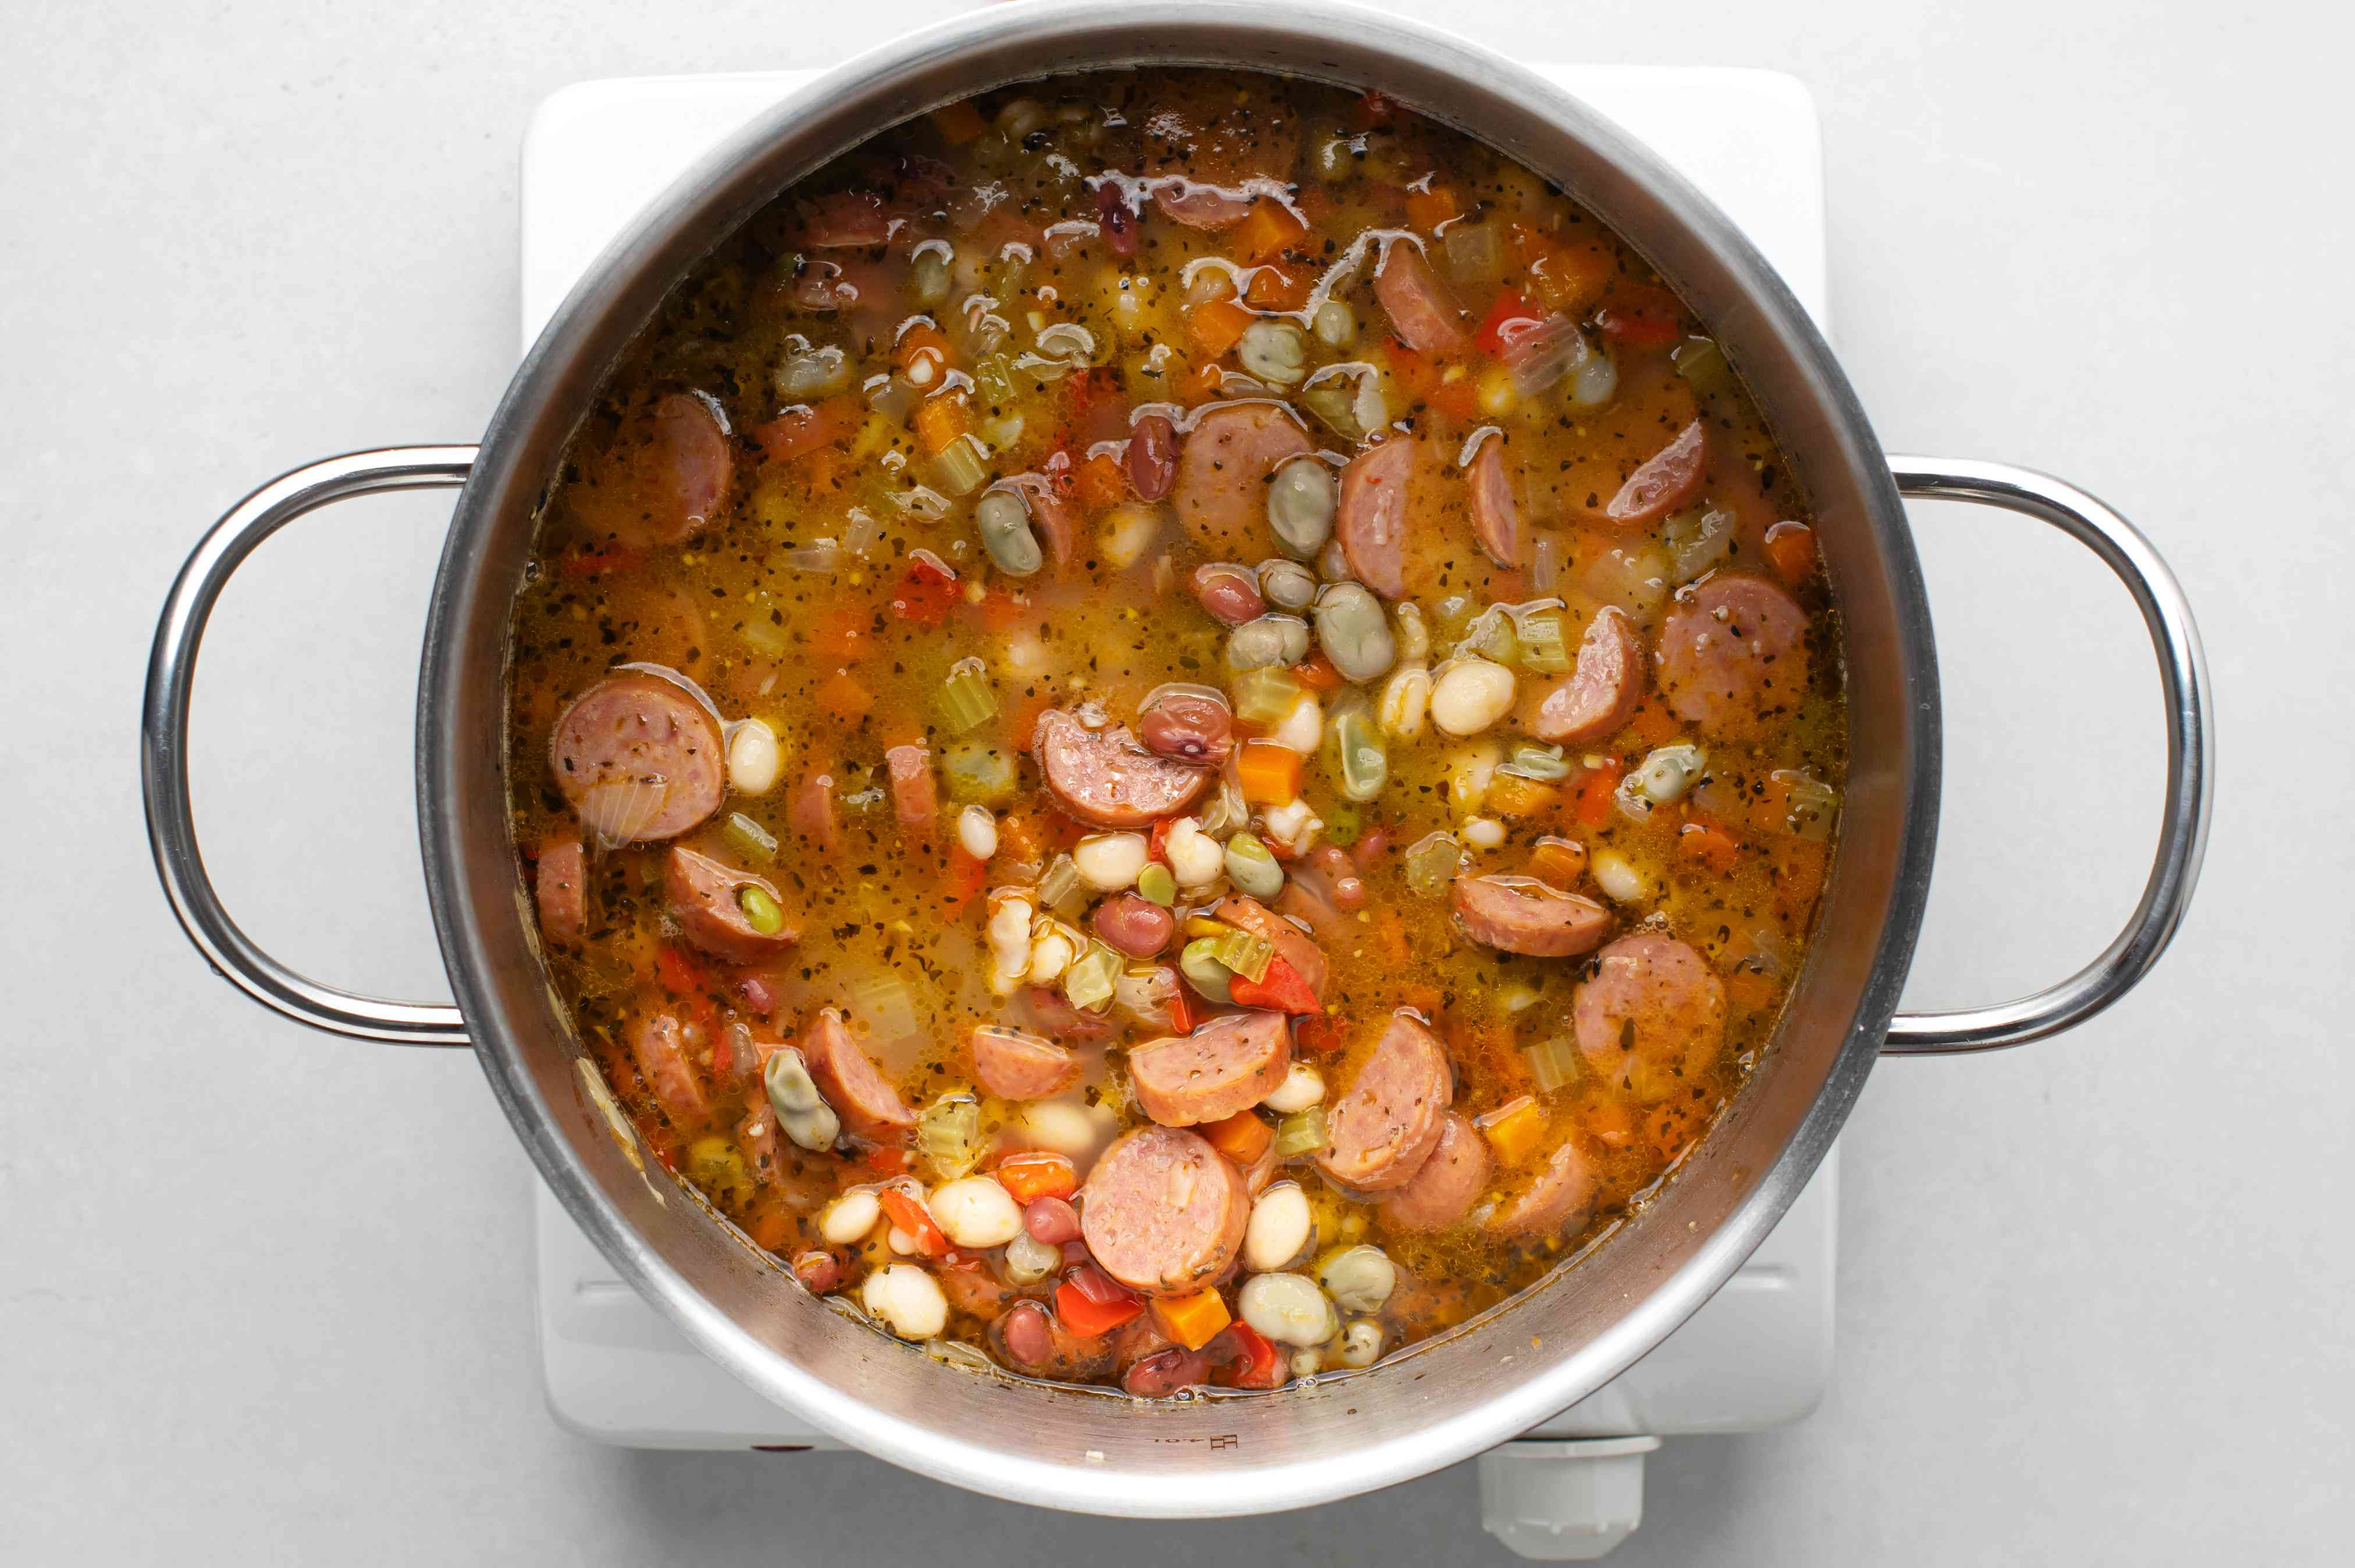 add drained beans to the soup in the pot